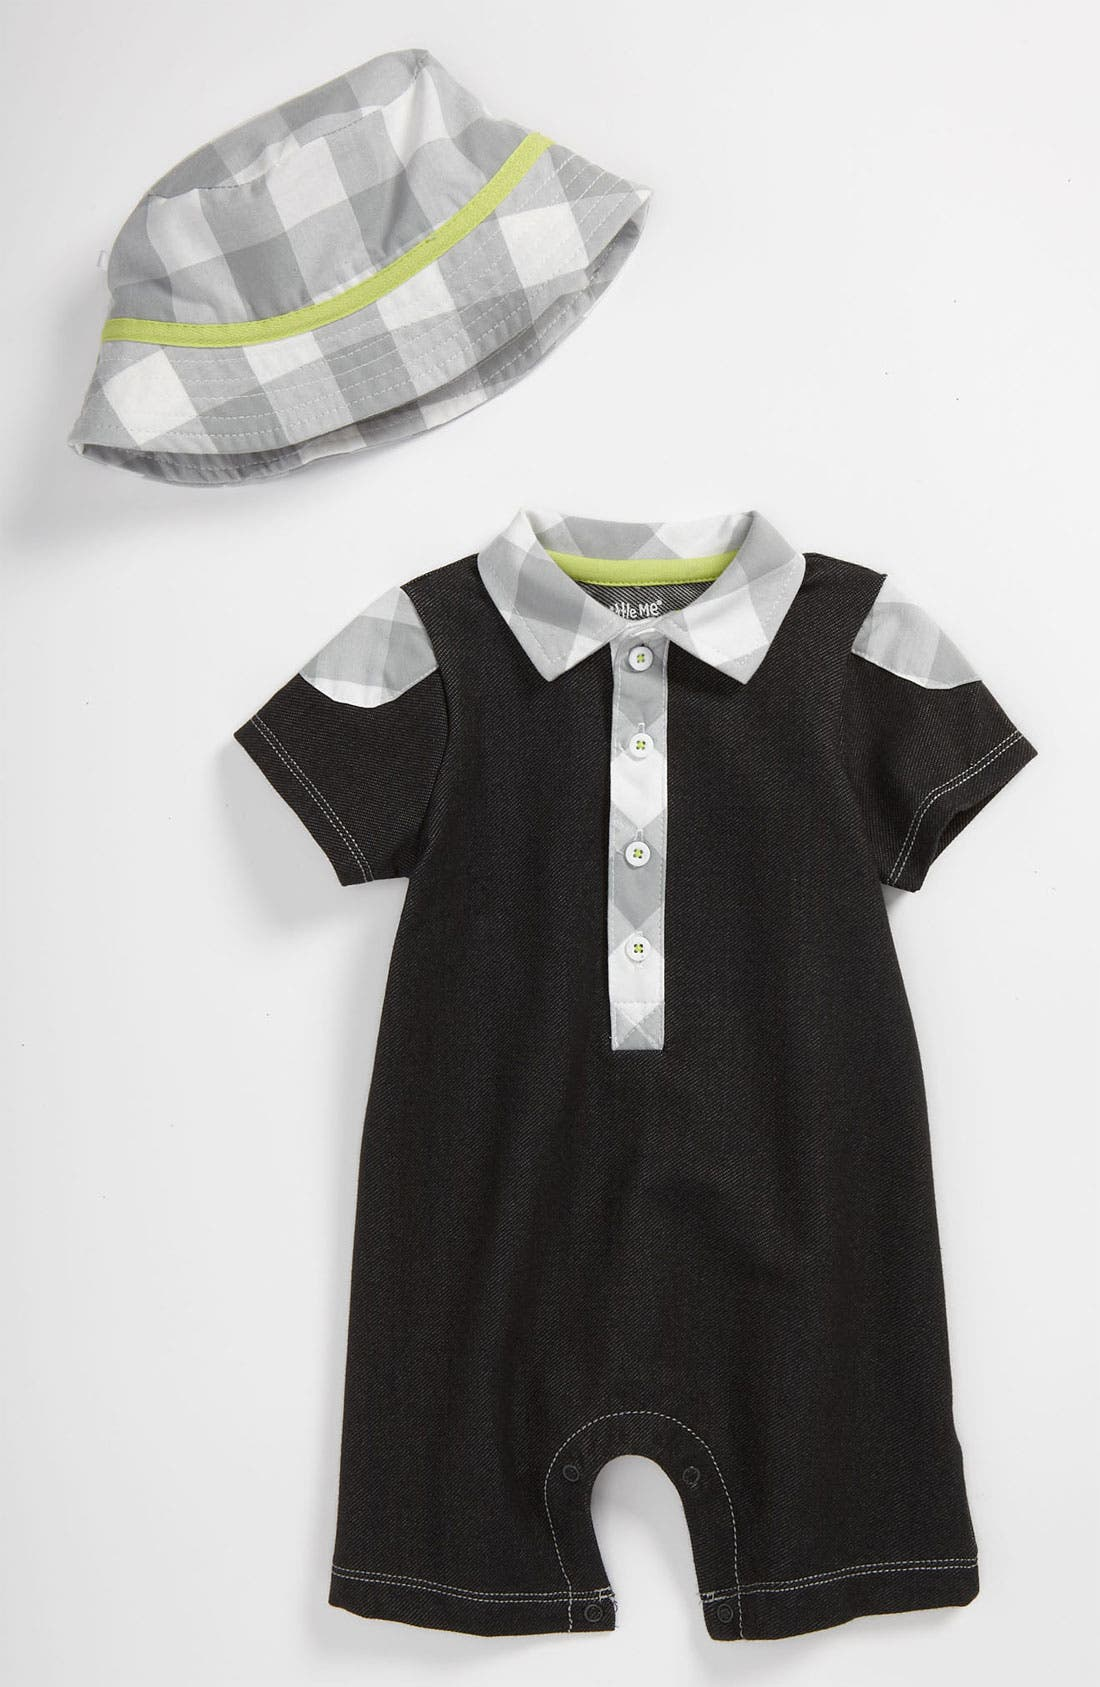 Main Image - Little Me 'On Safari' Romper & Hat (Infant)